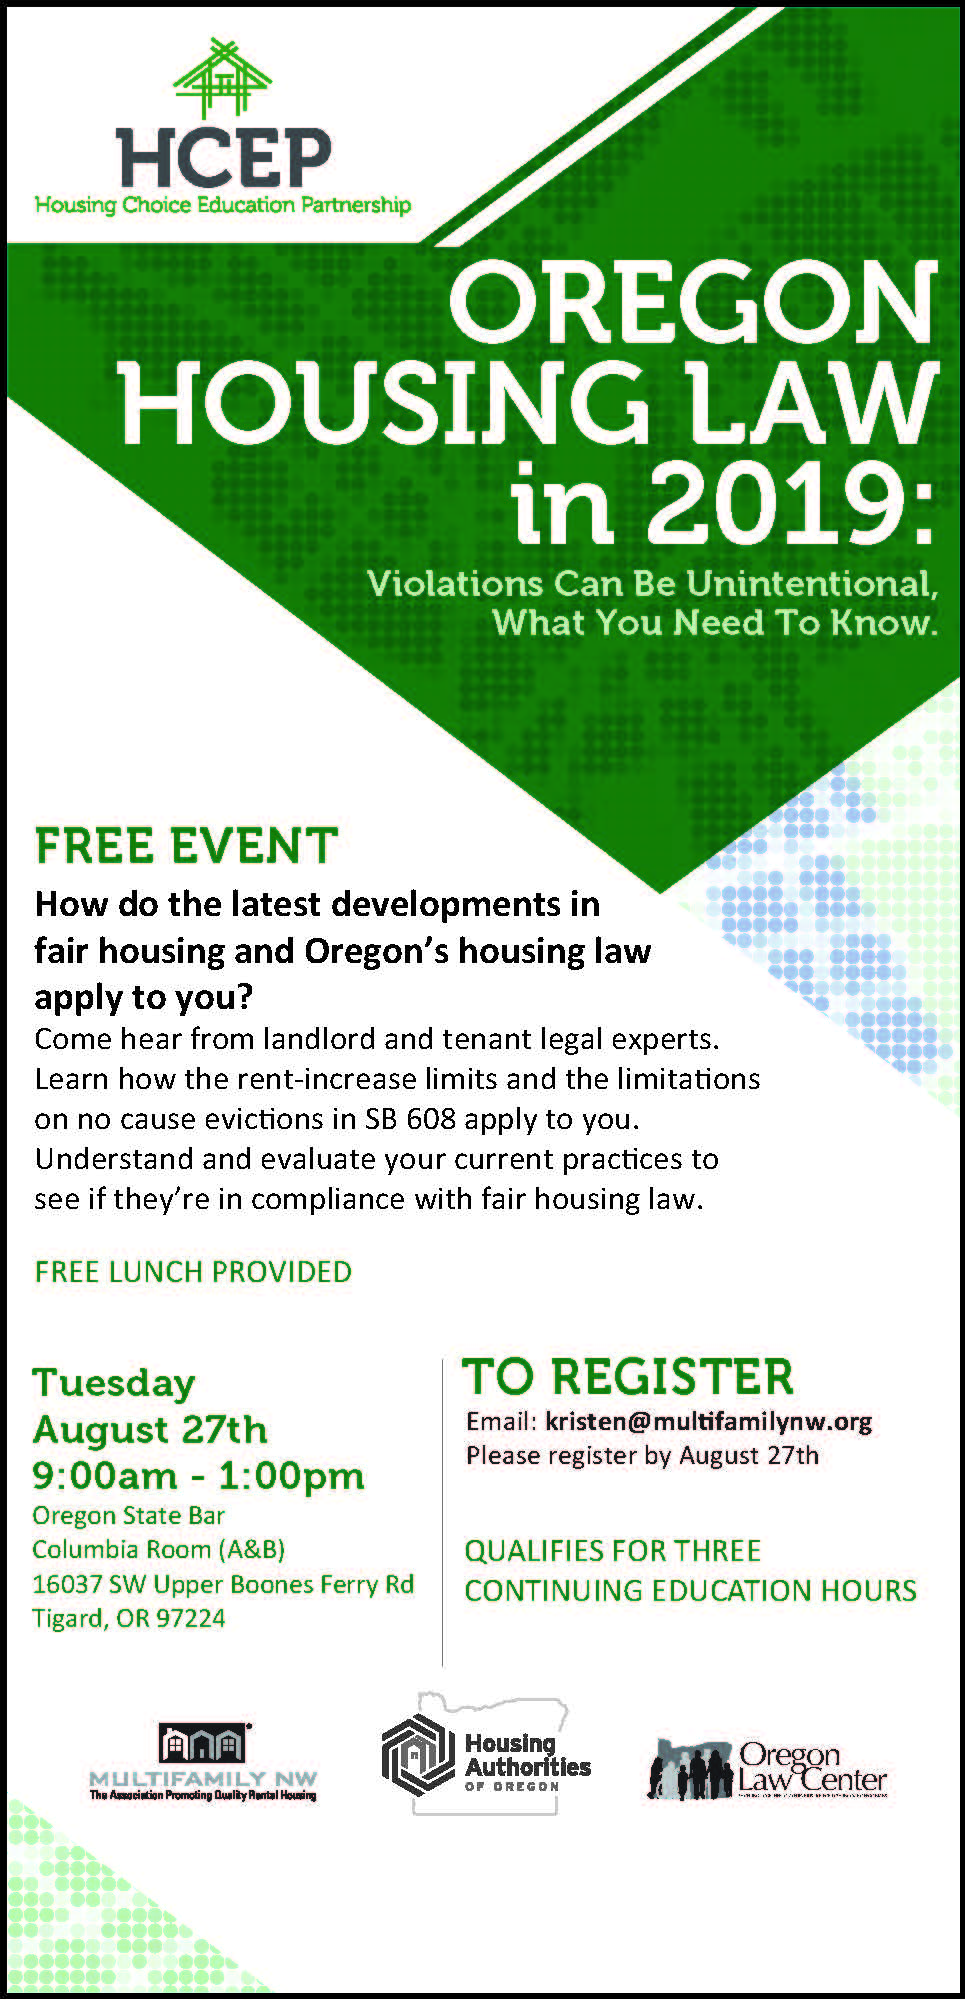 Oregon Housing Law in 2019 class. Free event. Tuesday August 27th from 9am to 1pm at the Oregon State Bar.